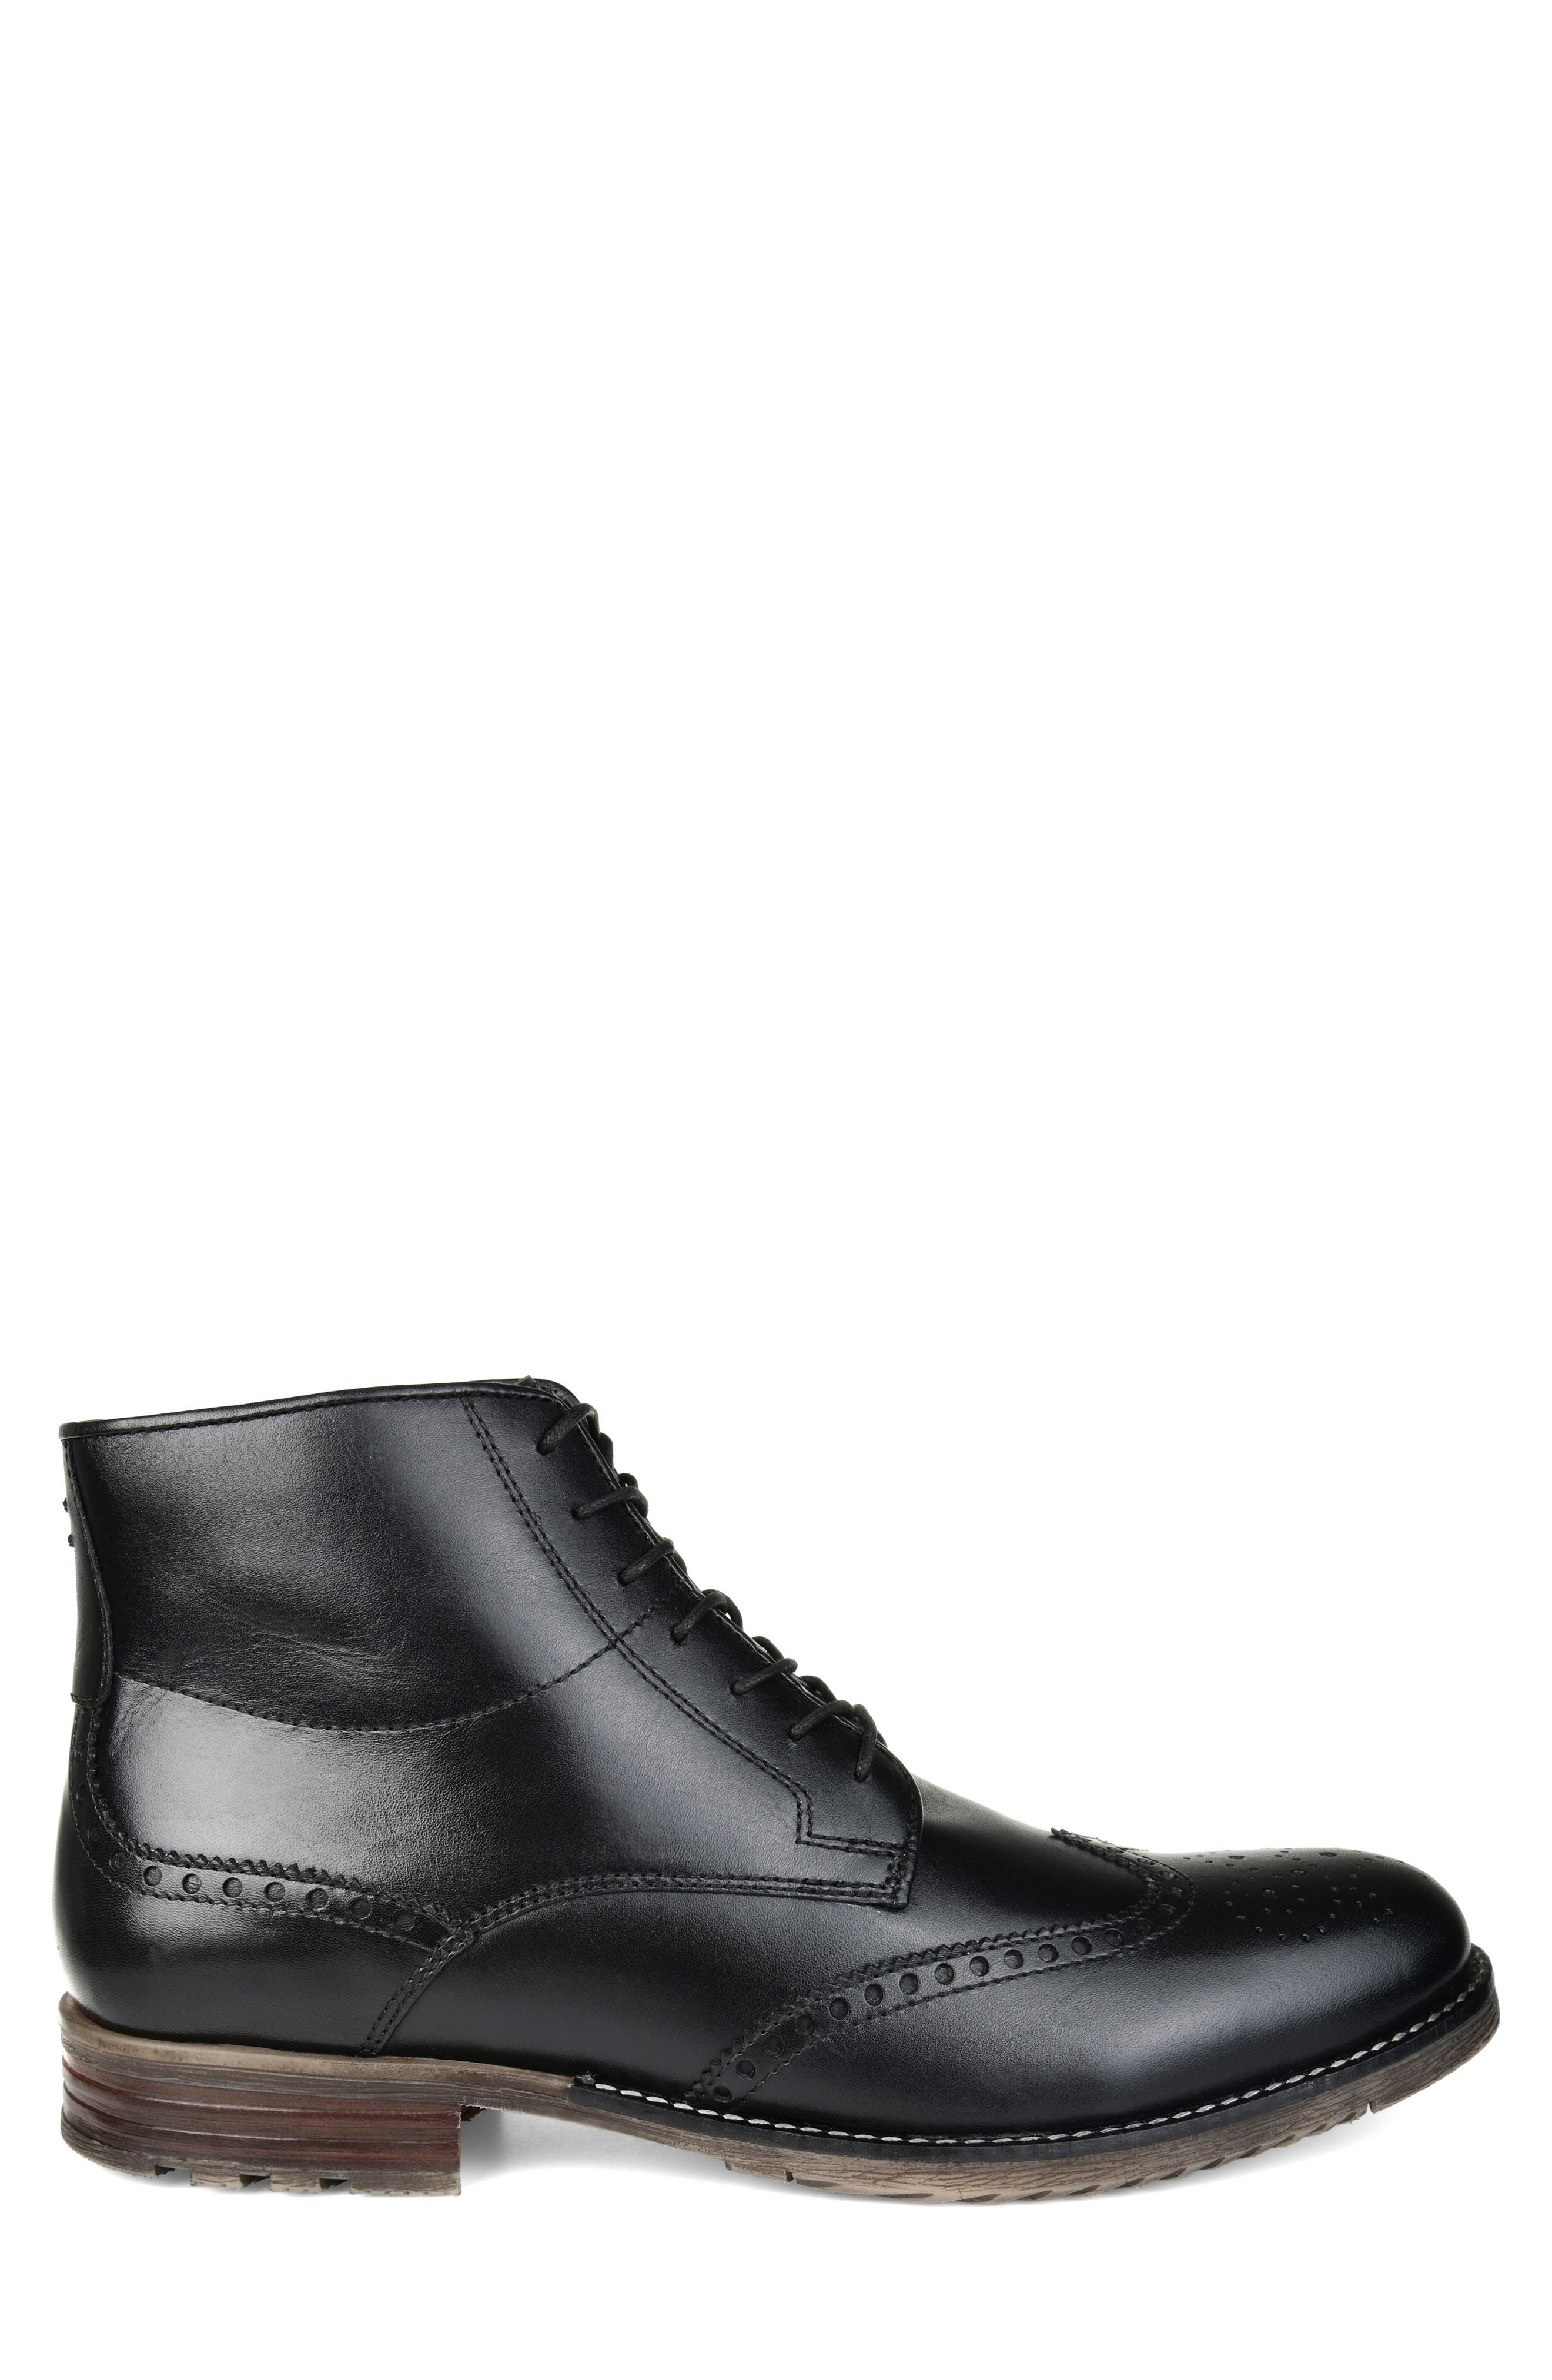 THOMAS AND VINE, Ryker Wingtip Boot, Alternate thumbnail 3, color, BLACK LEATHER